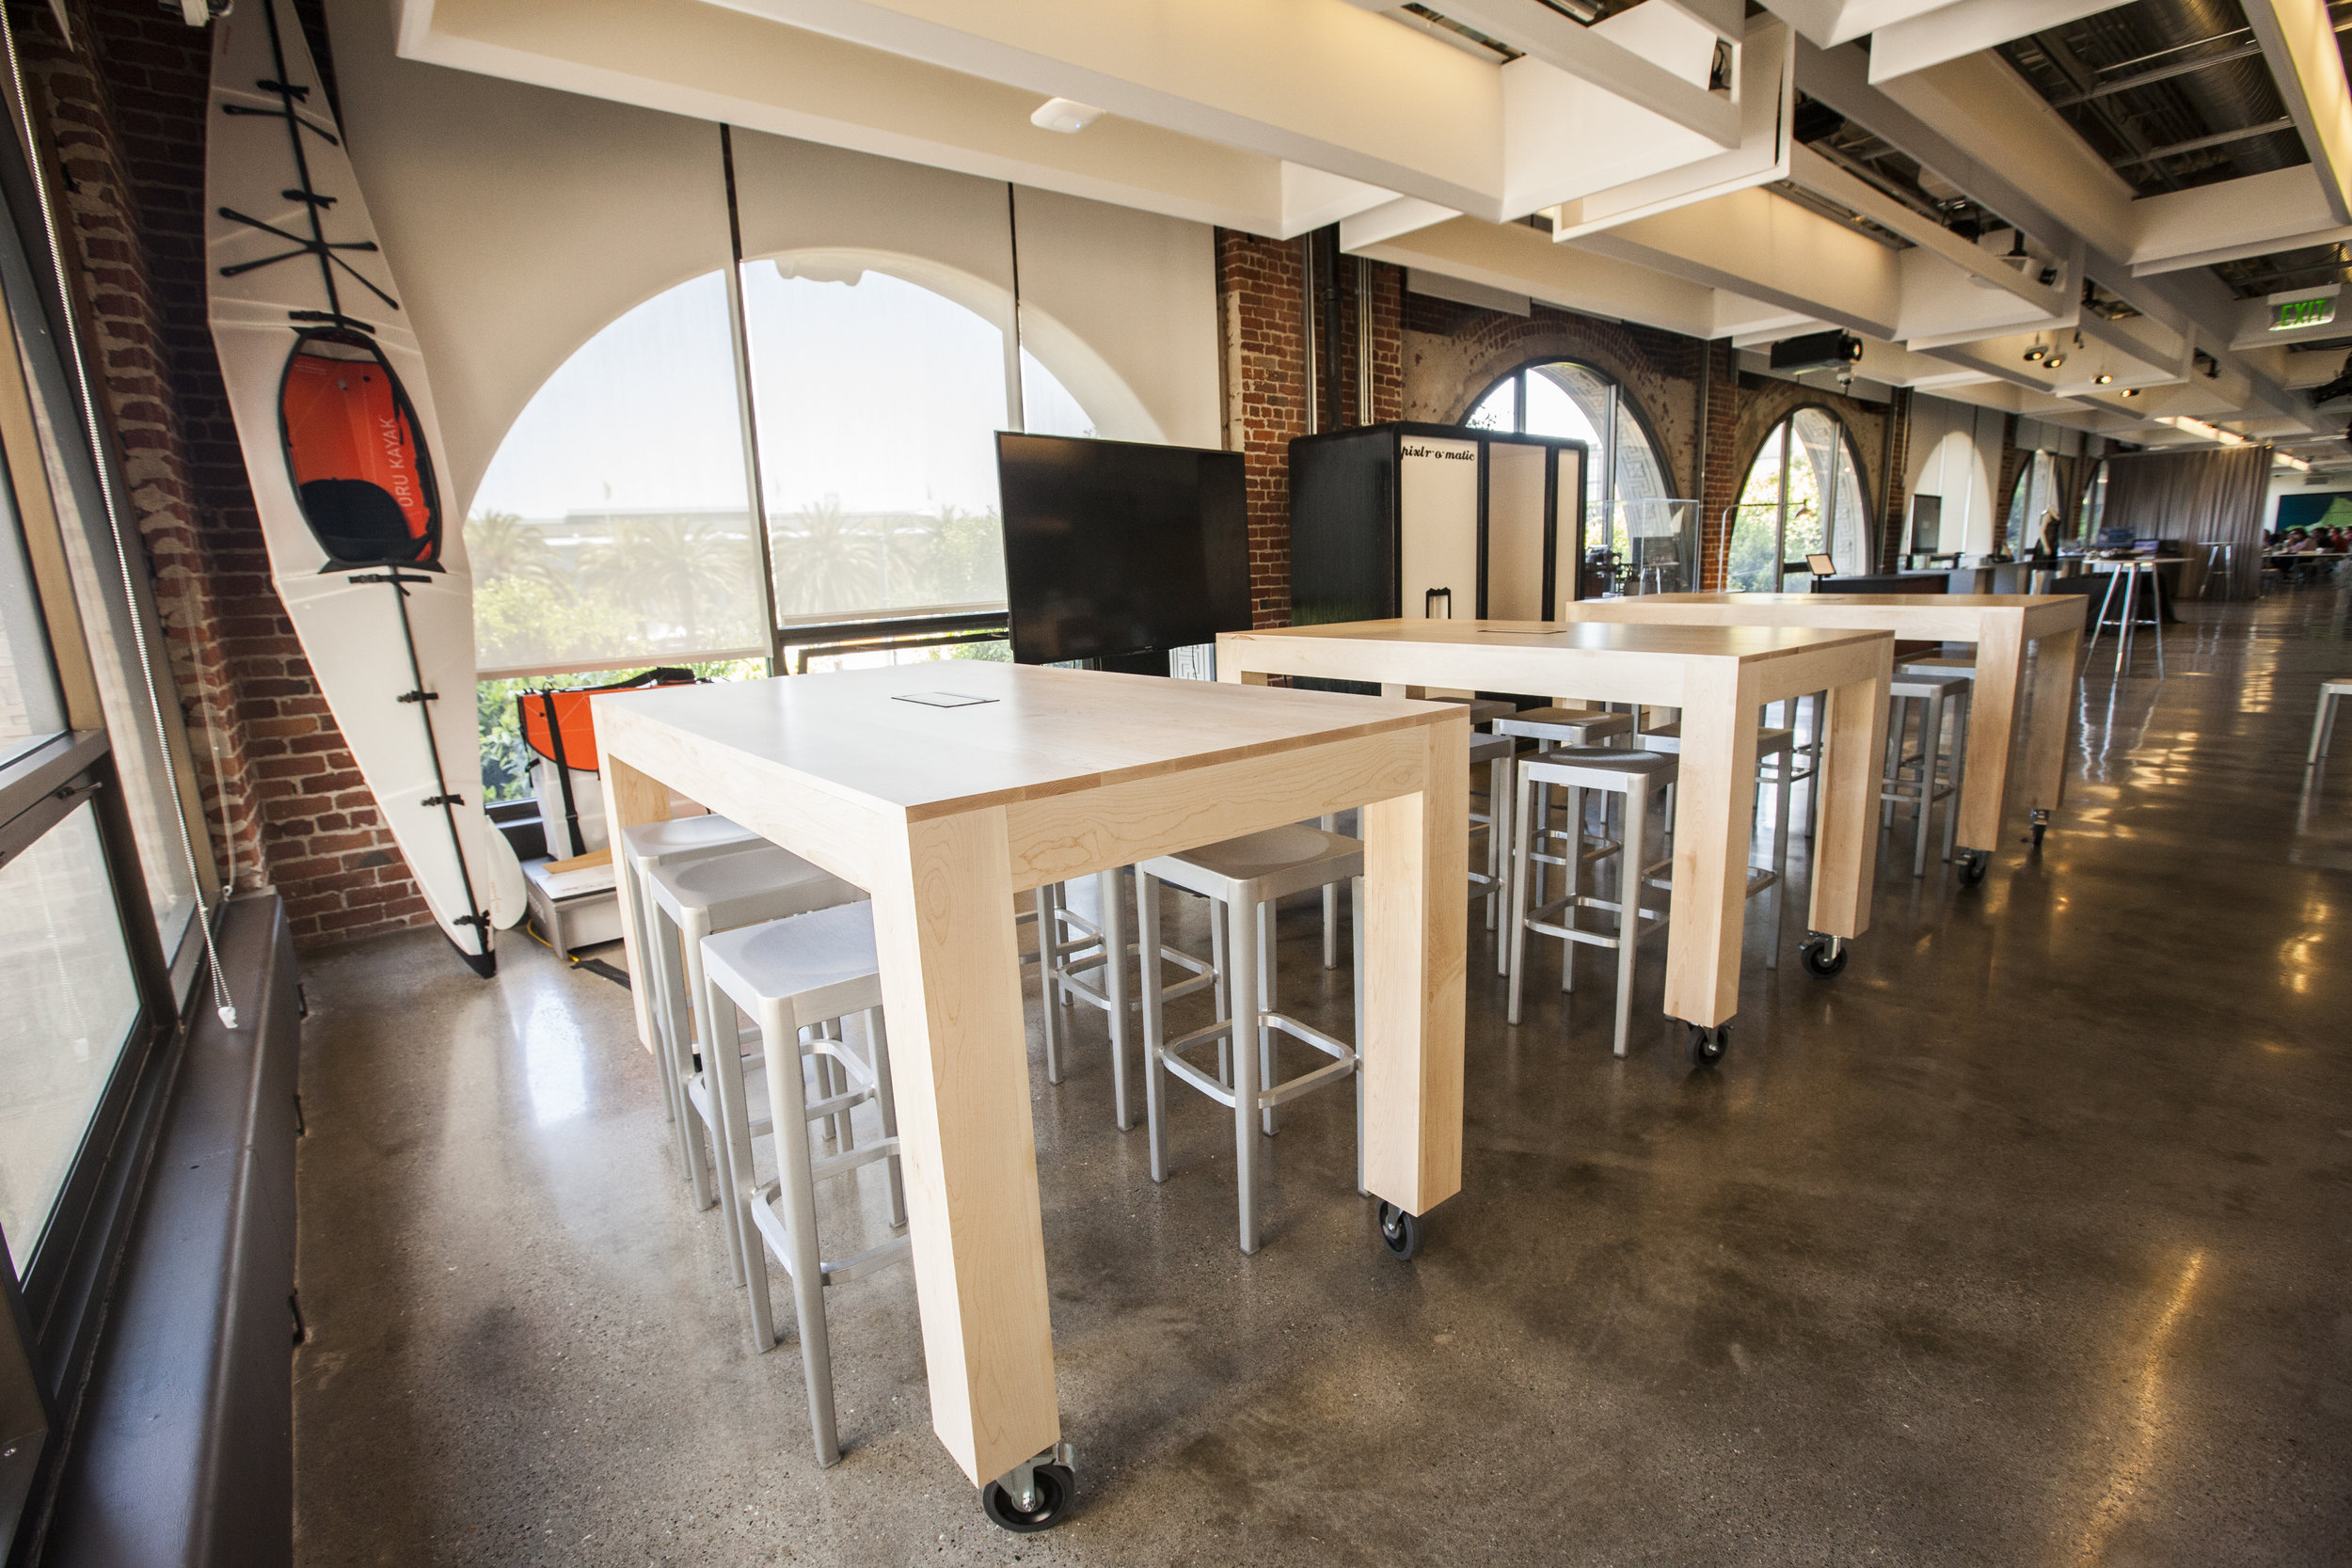 Large maple hardwood tables, made to be durable and highly functional for gallery classes and presentations. These tables at The Autodesk Gallery in San Francisco are standing height, have locking caster wheels and center power units.